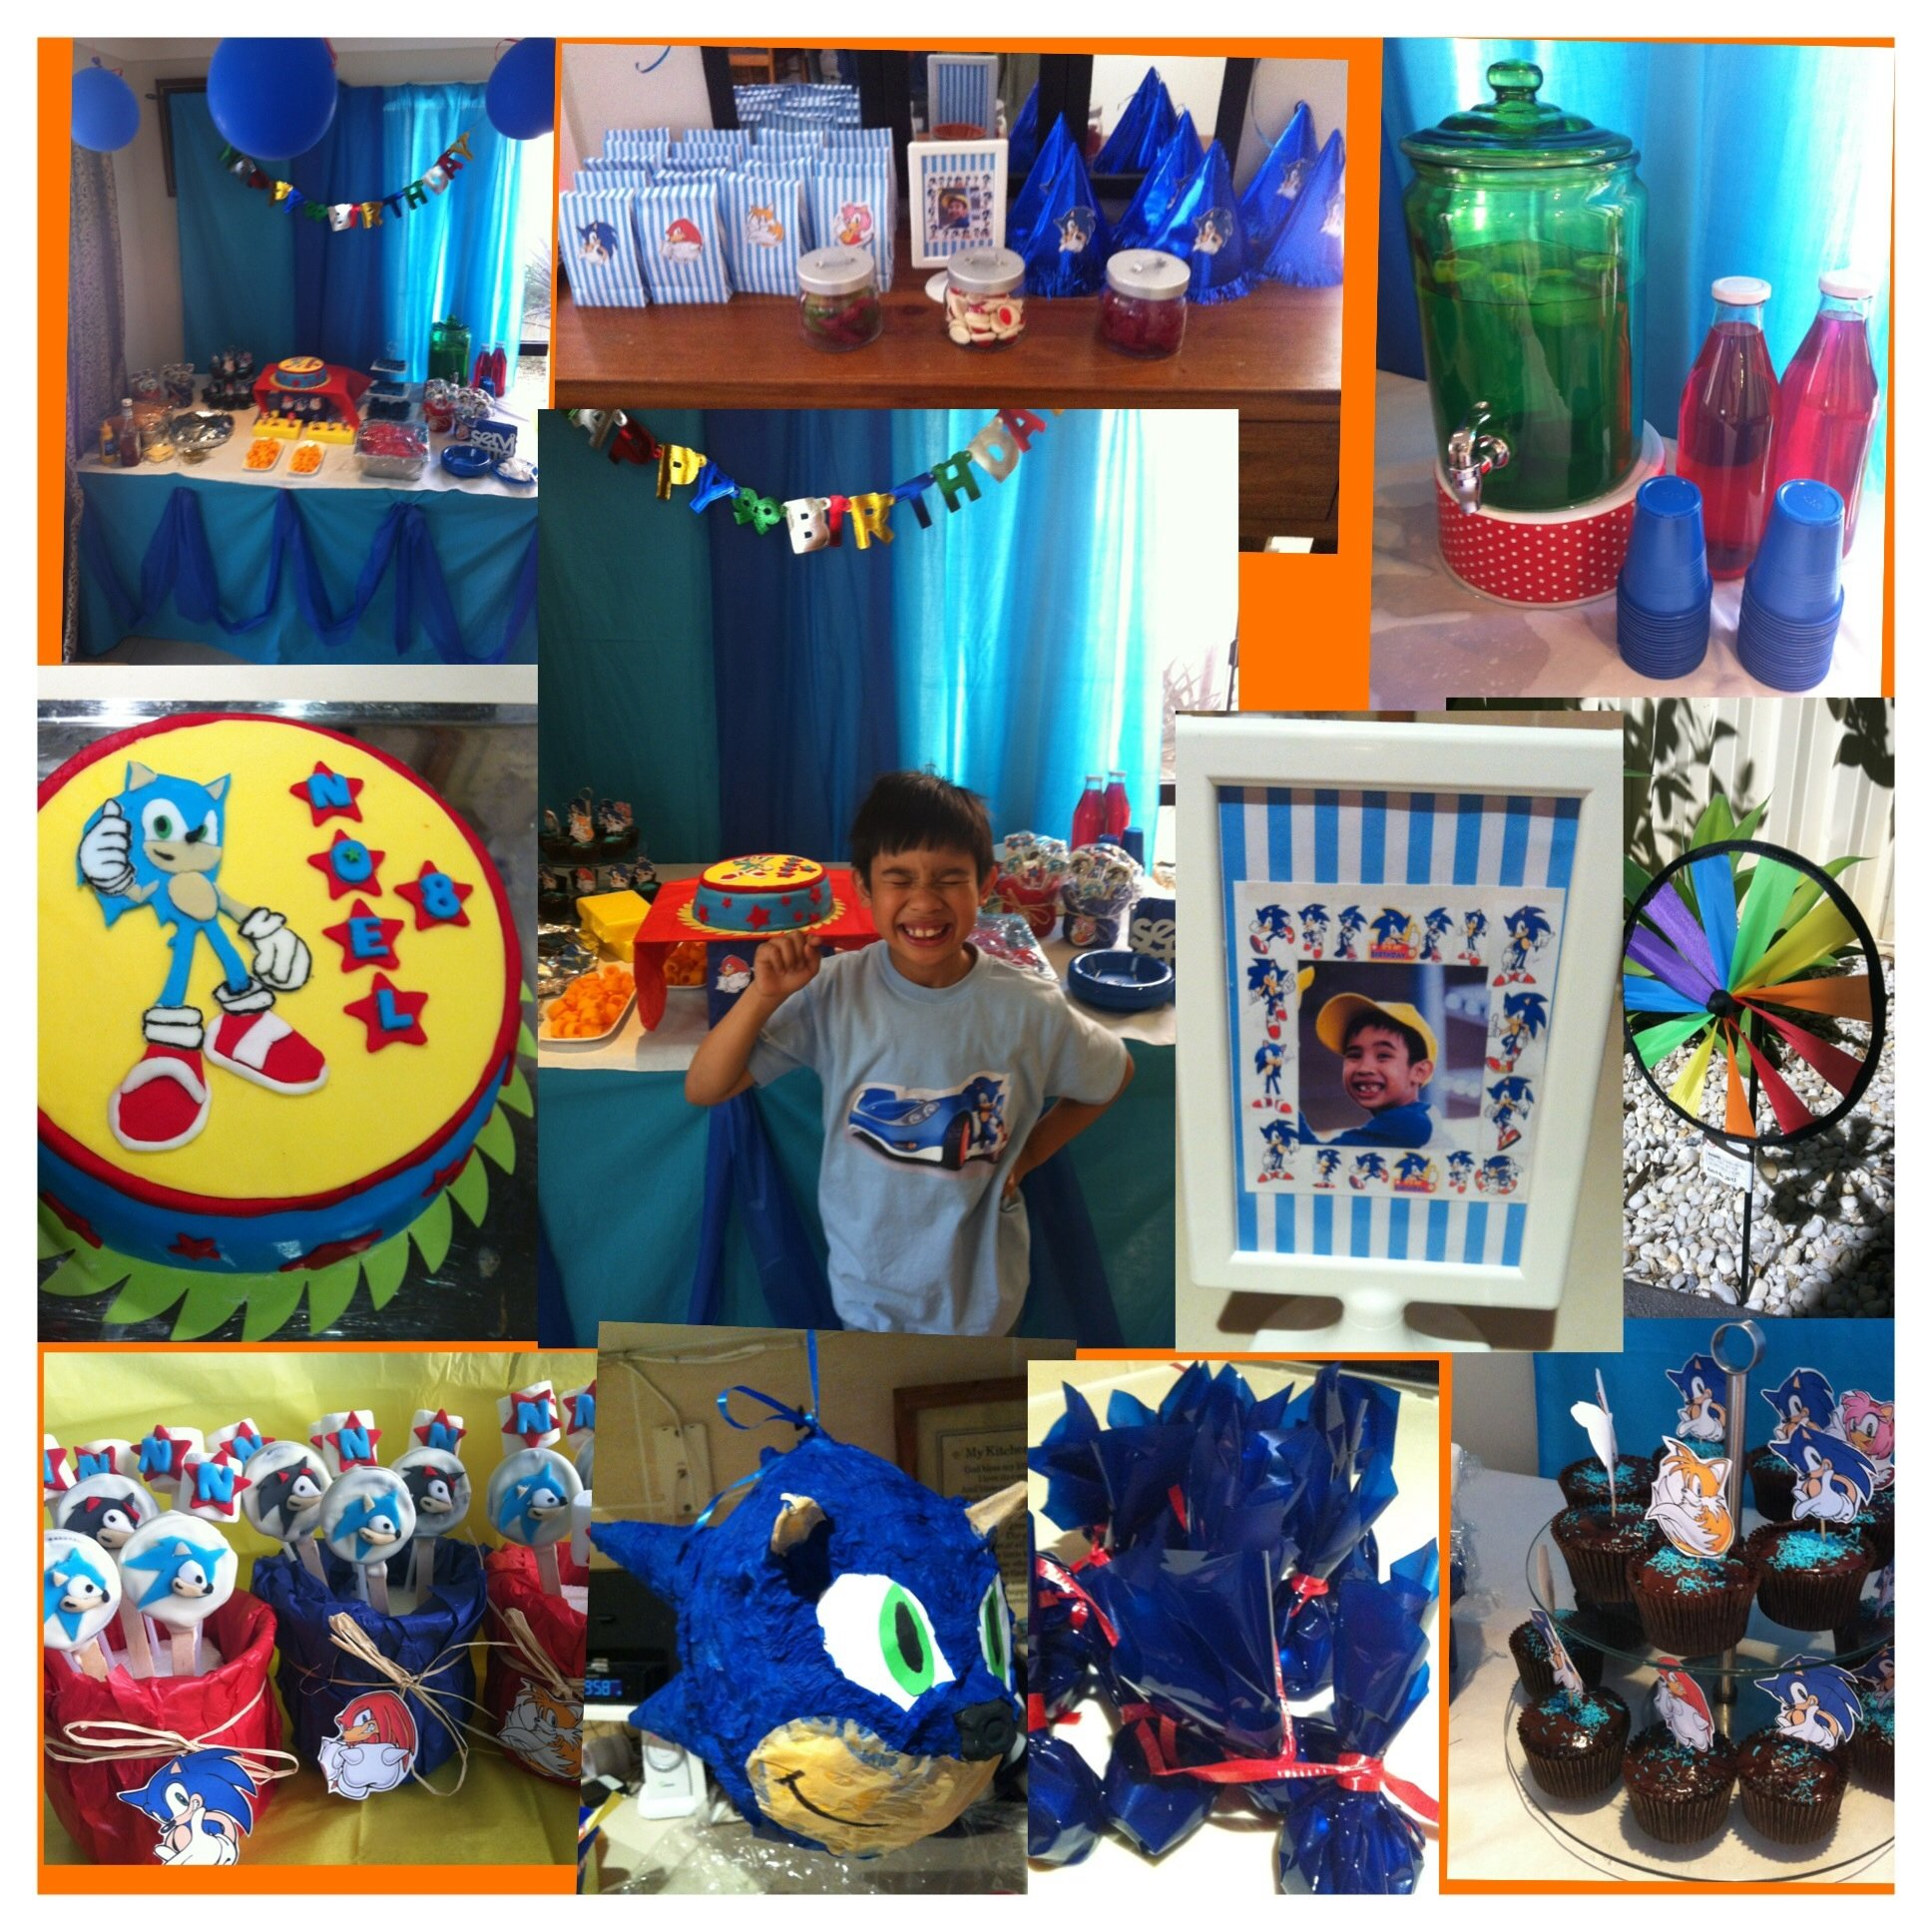 10 Great Sonic The Hedgehog Birthday Party Ideas sonic the hedgehog 8th birthday party sonic bday party for gavin 2021